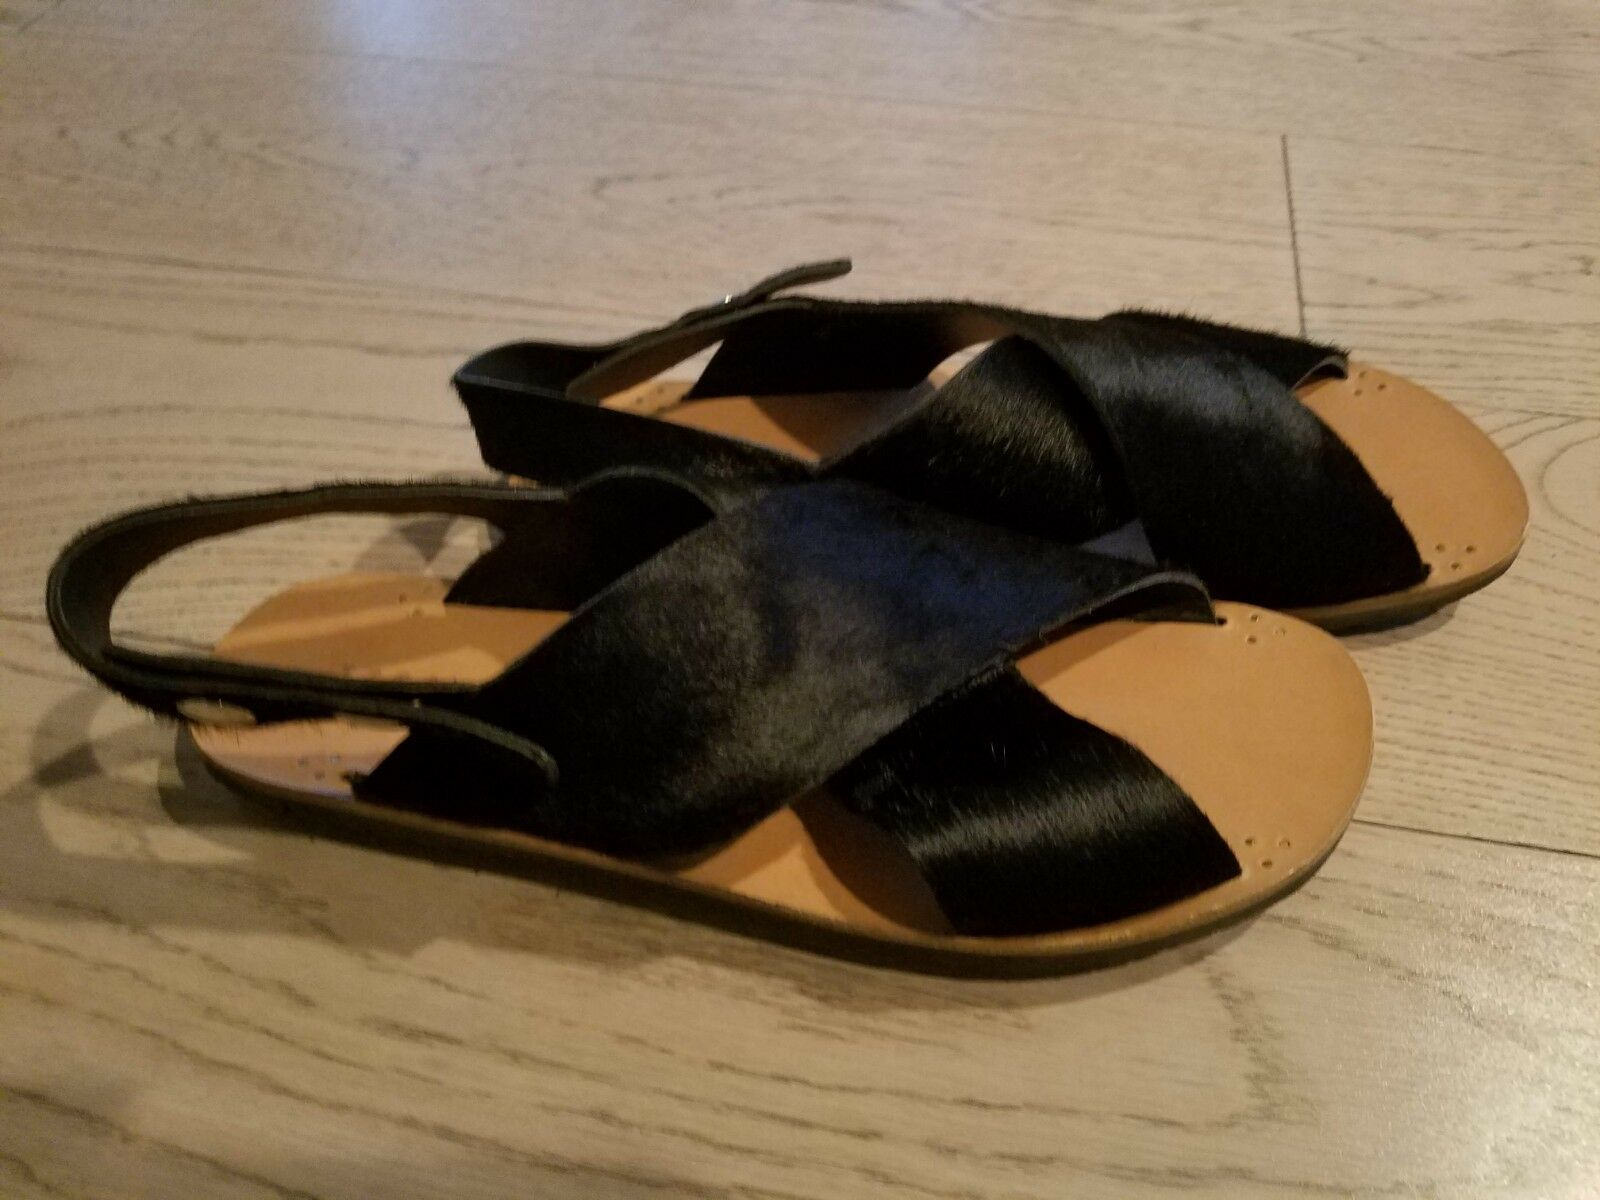 JIGSAW nero Cowhair Criss Cross Leather Sandals; Rubber Rubber Rubber Soles, Sz 39; MINT COND 8dbe37